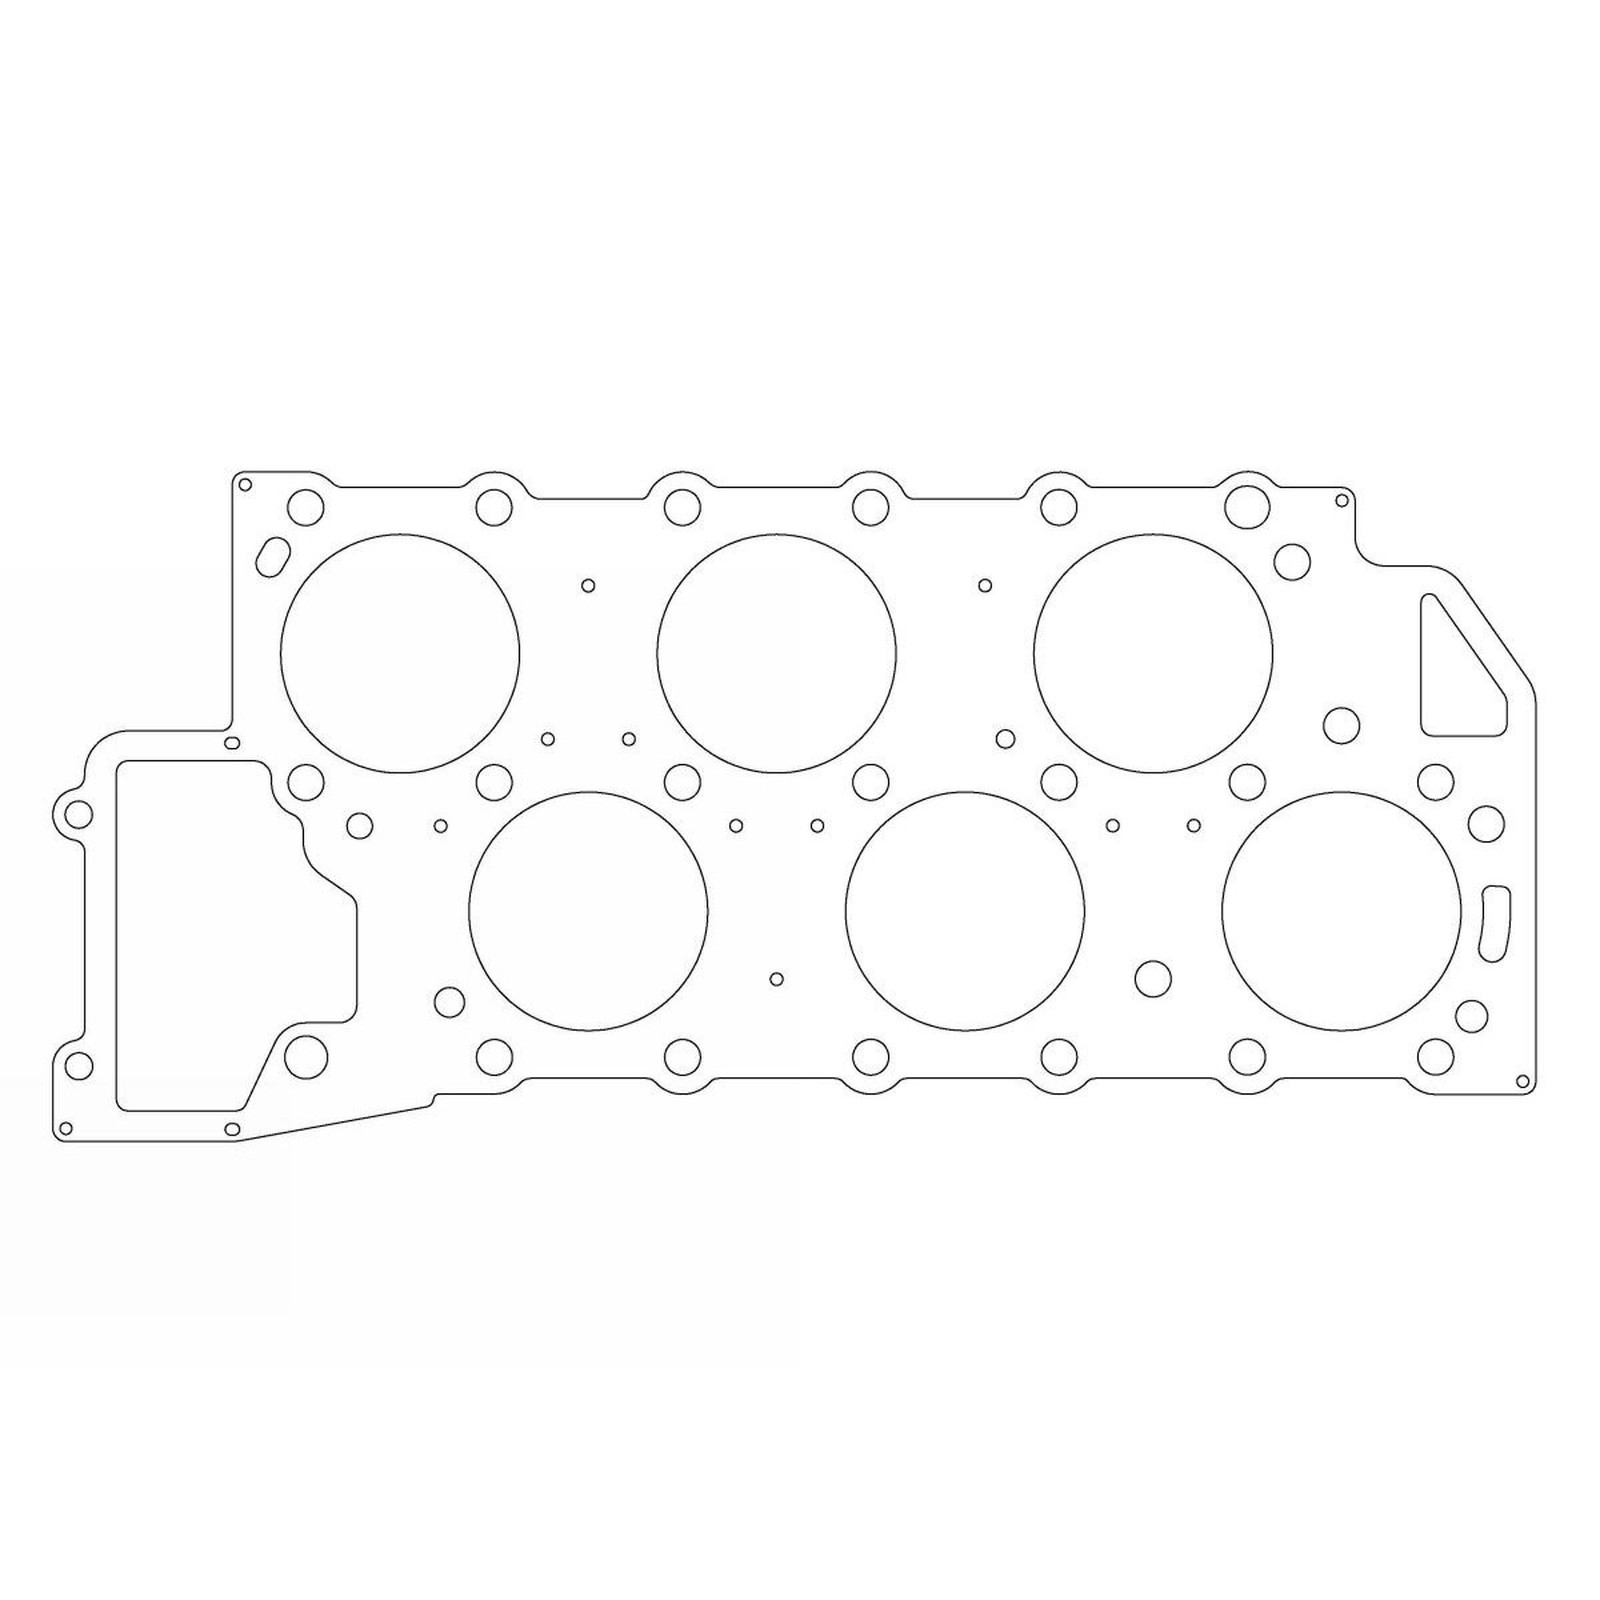 athena cylinder head gasket for vw vento 2 8 vr6 82 50mm 0 65mm cylinder head gasket for vw vento 2 8 vr6 82 50mm 0 65mm